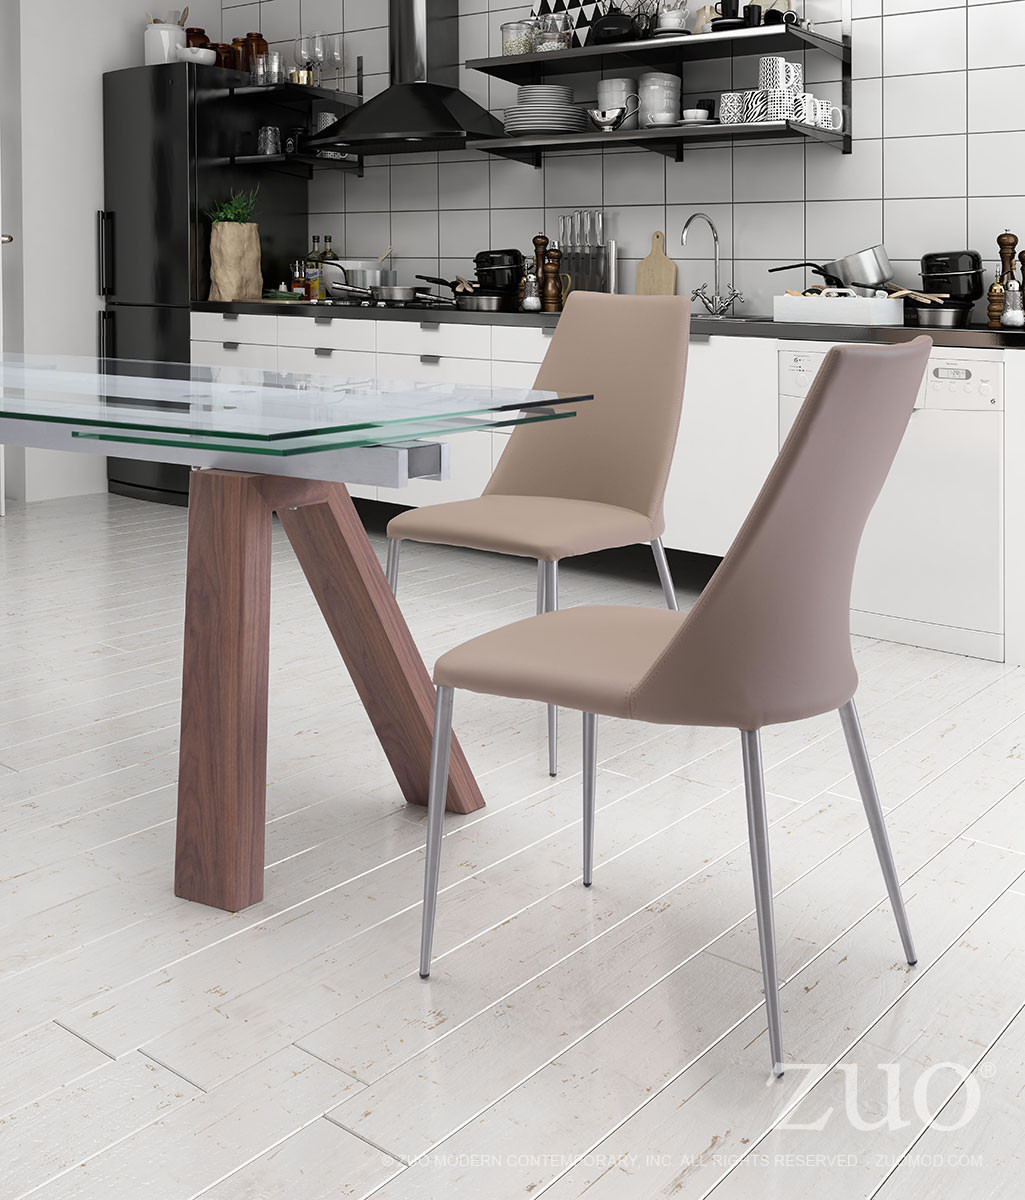 a to z hardwood flooring of whisp dining chair 10 furnishplus pertaining to leave a reply cancel reply